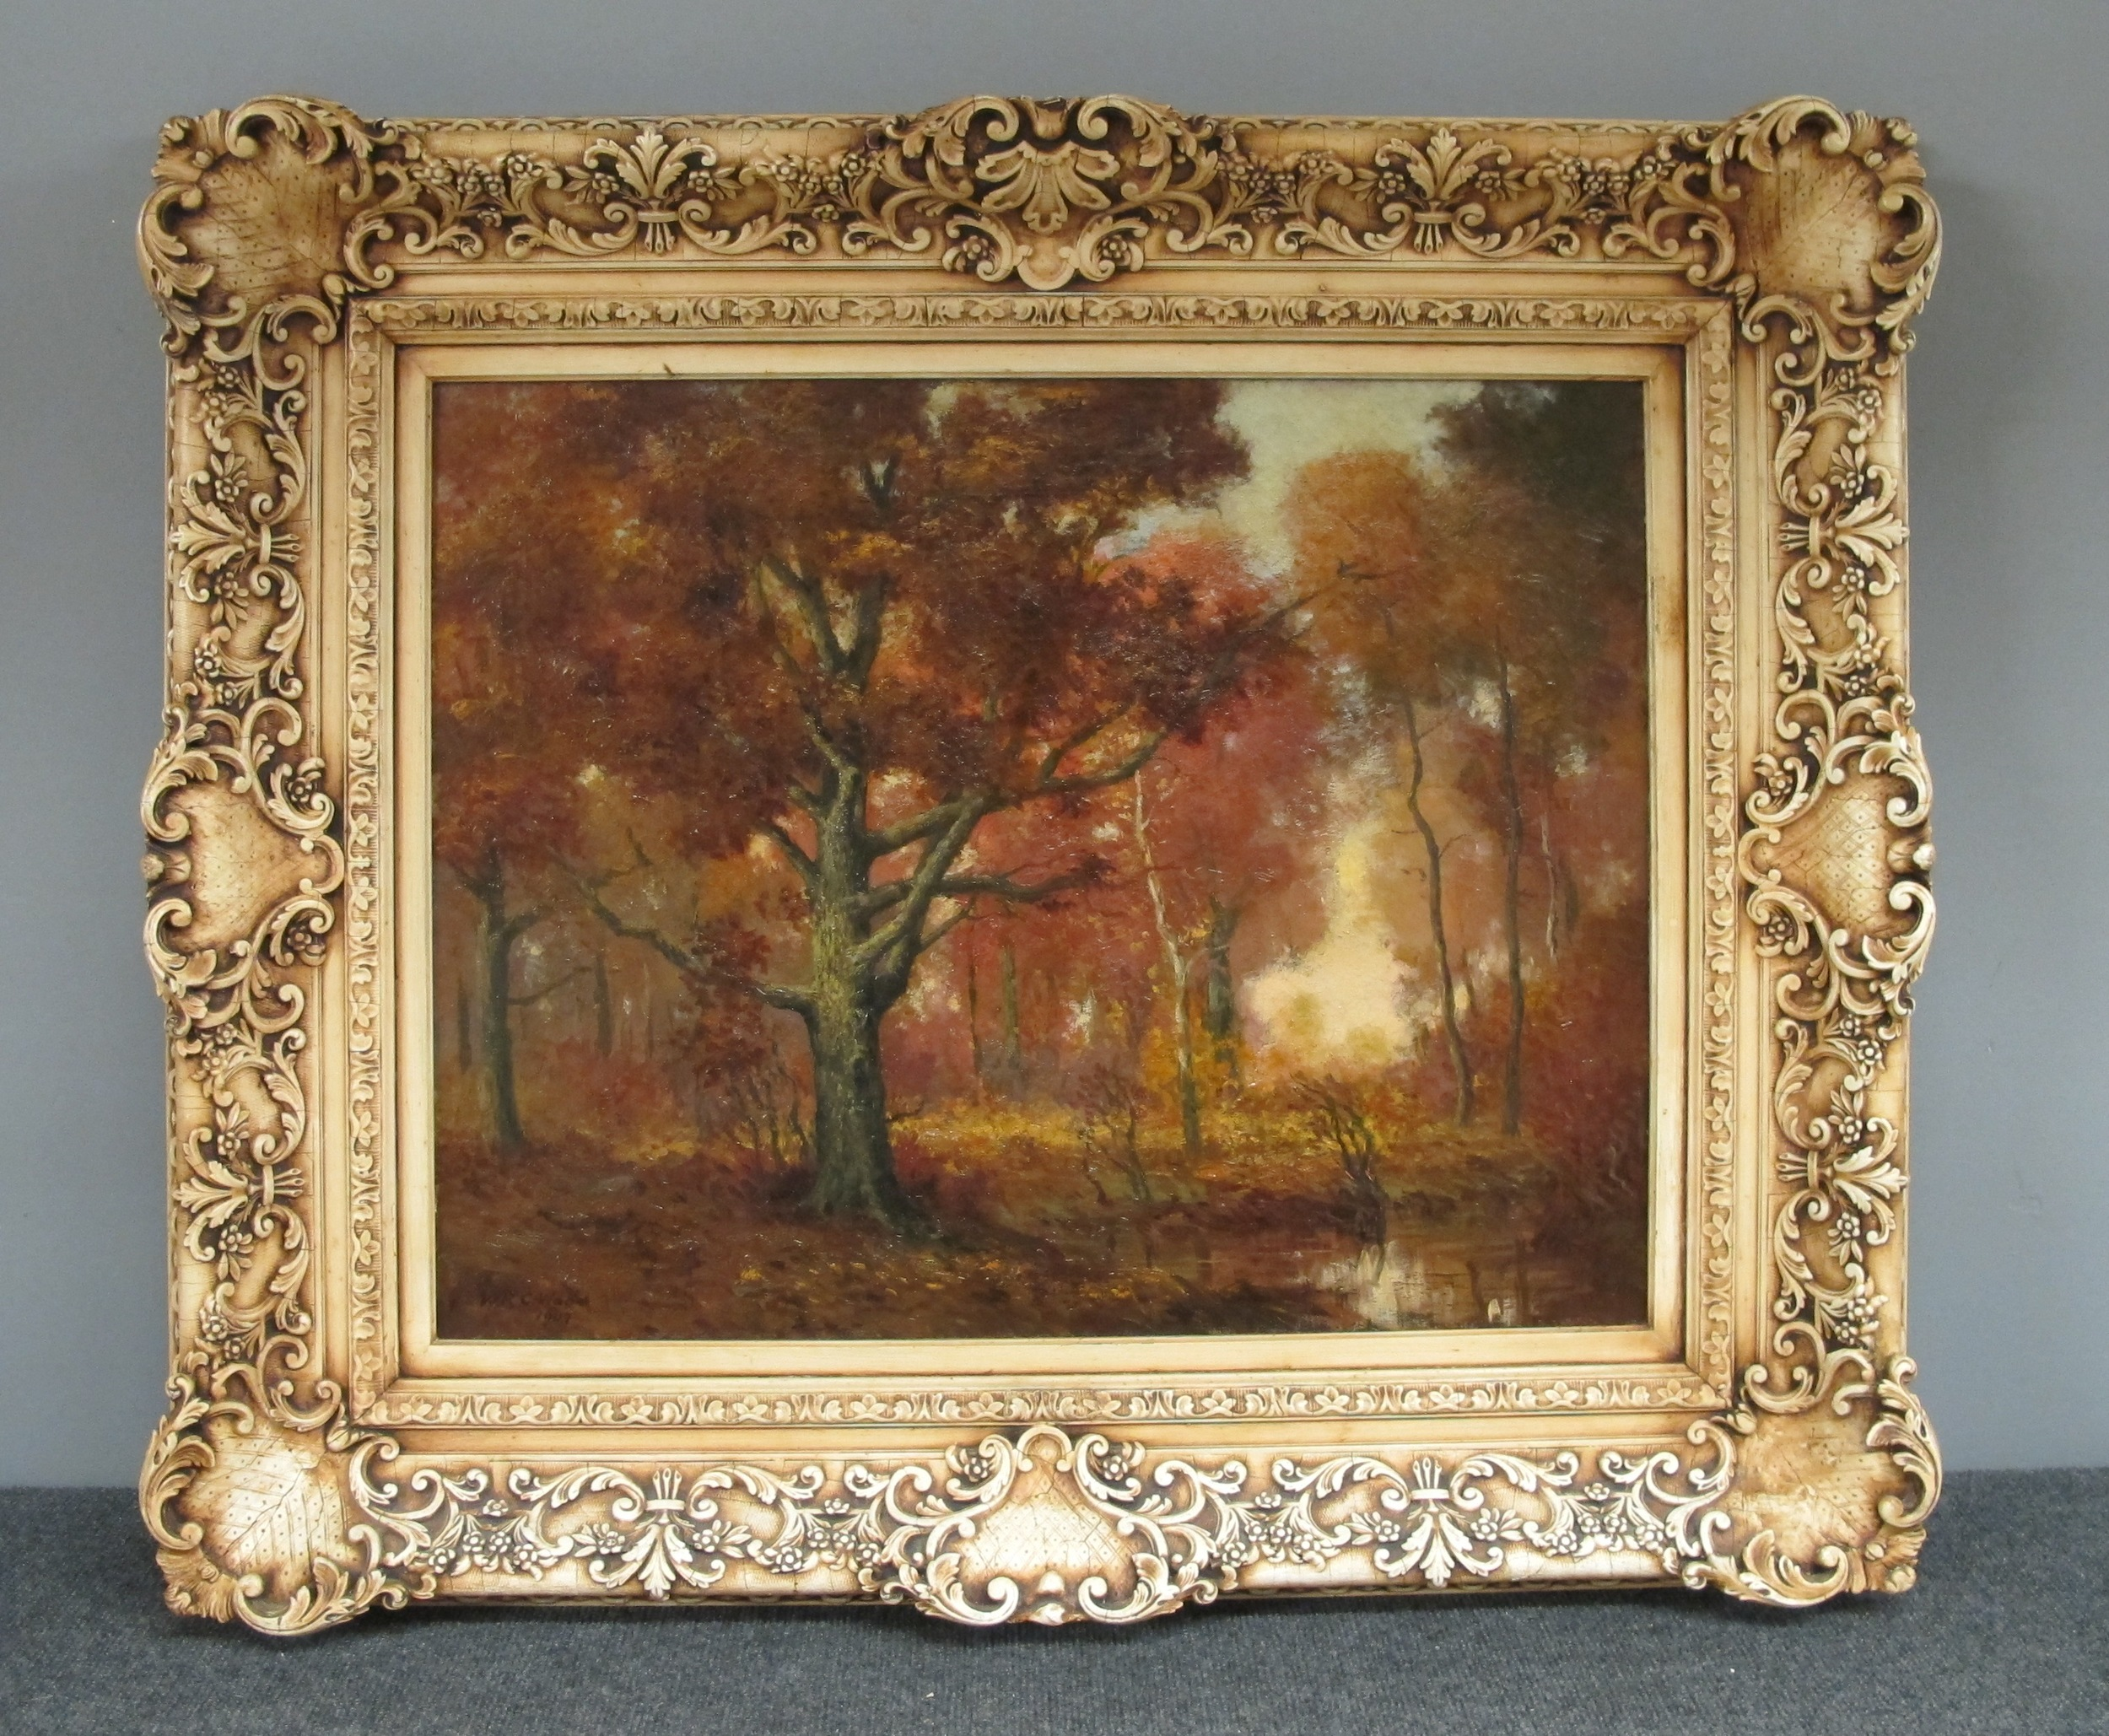 After Treatment and Framing